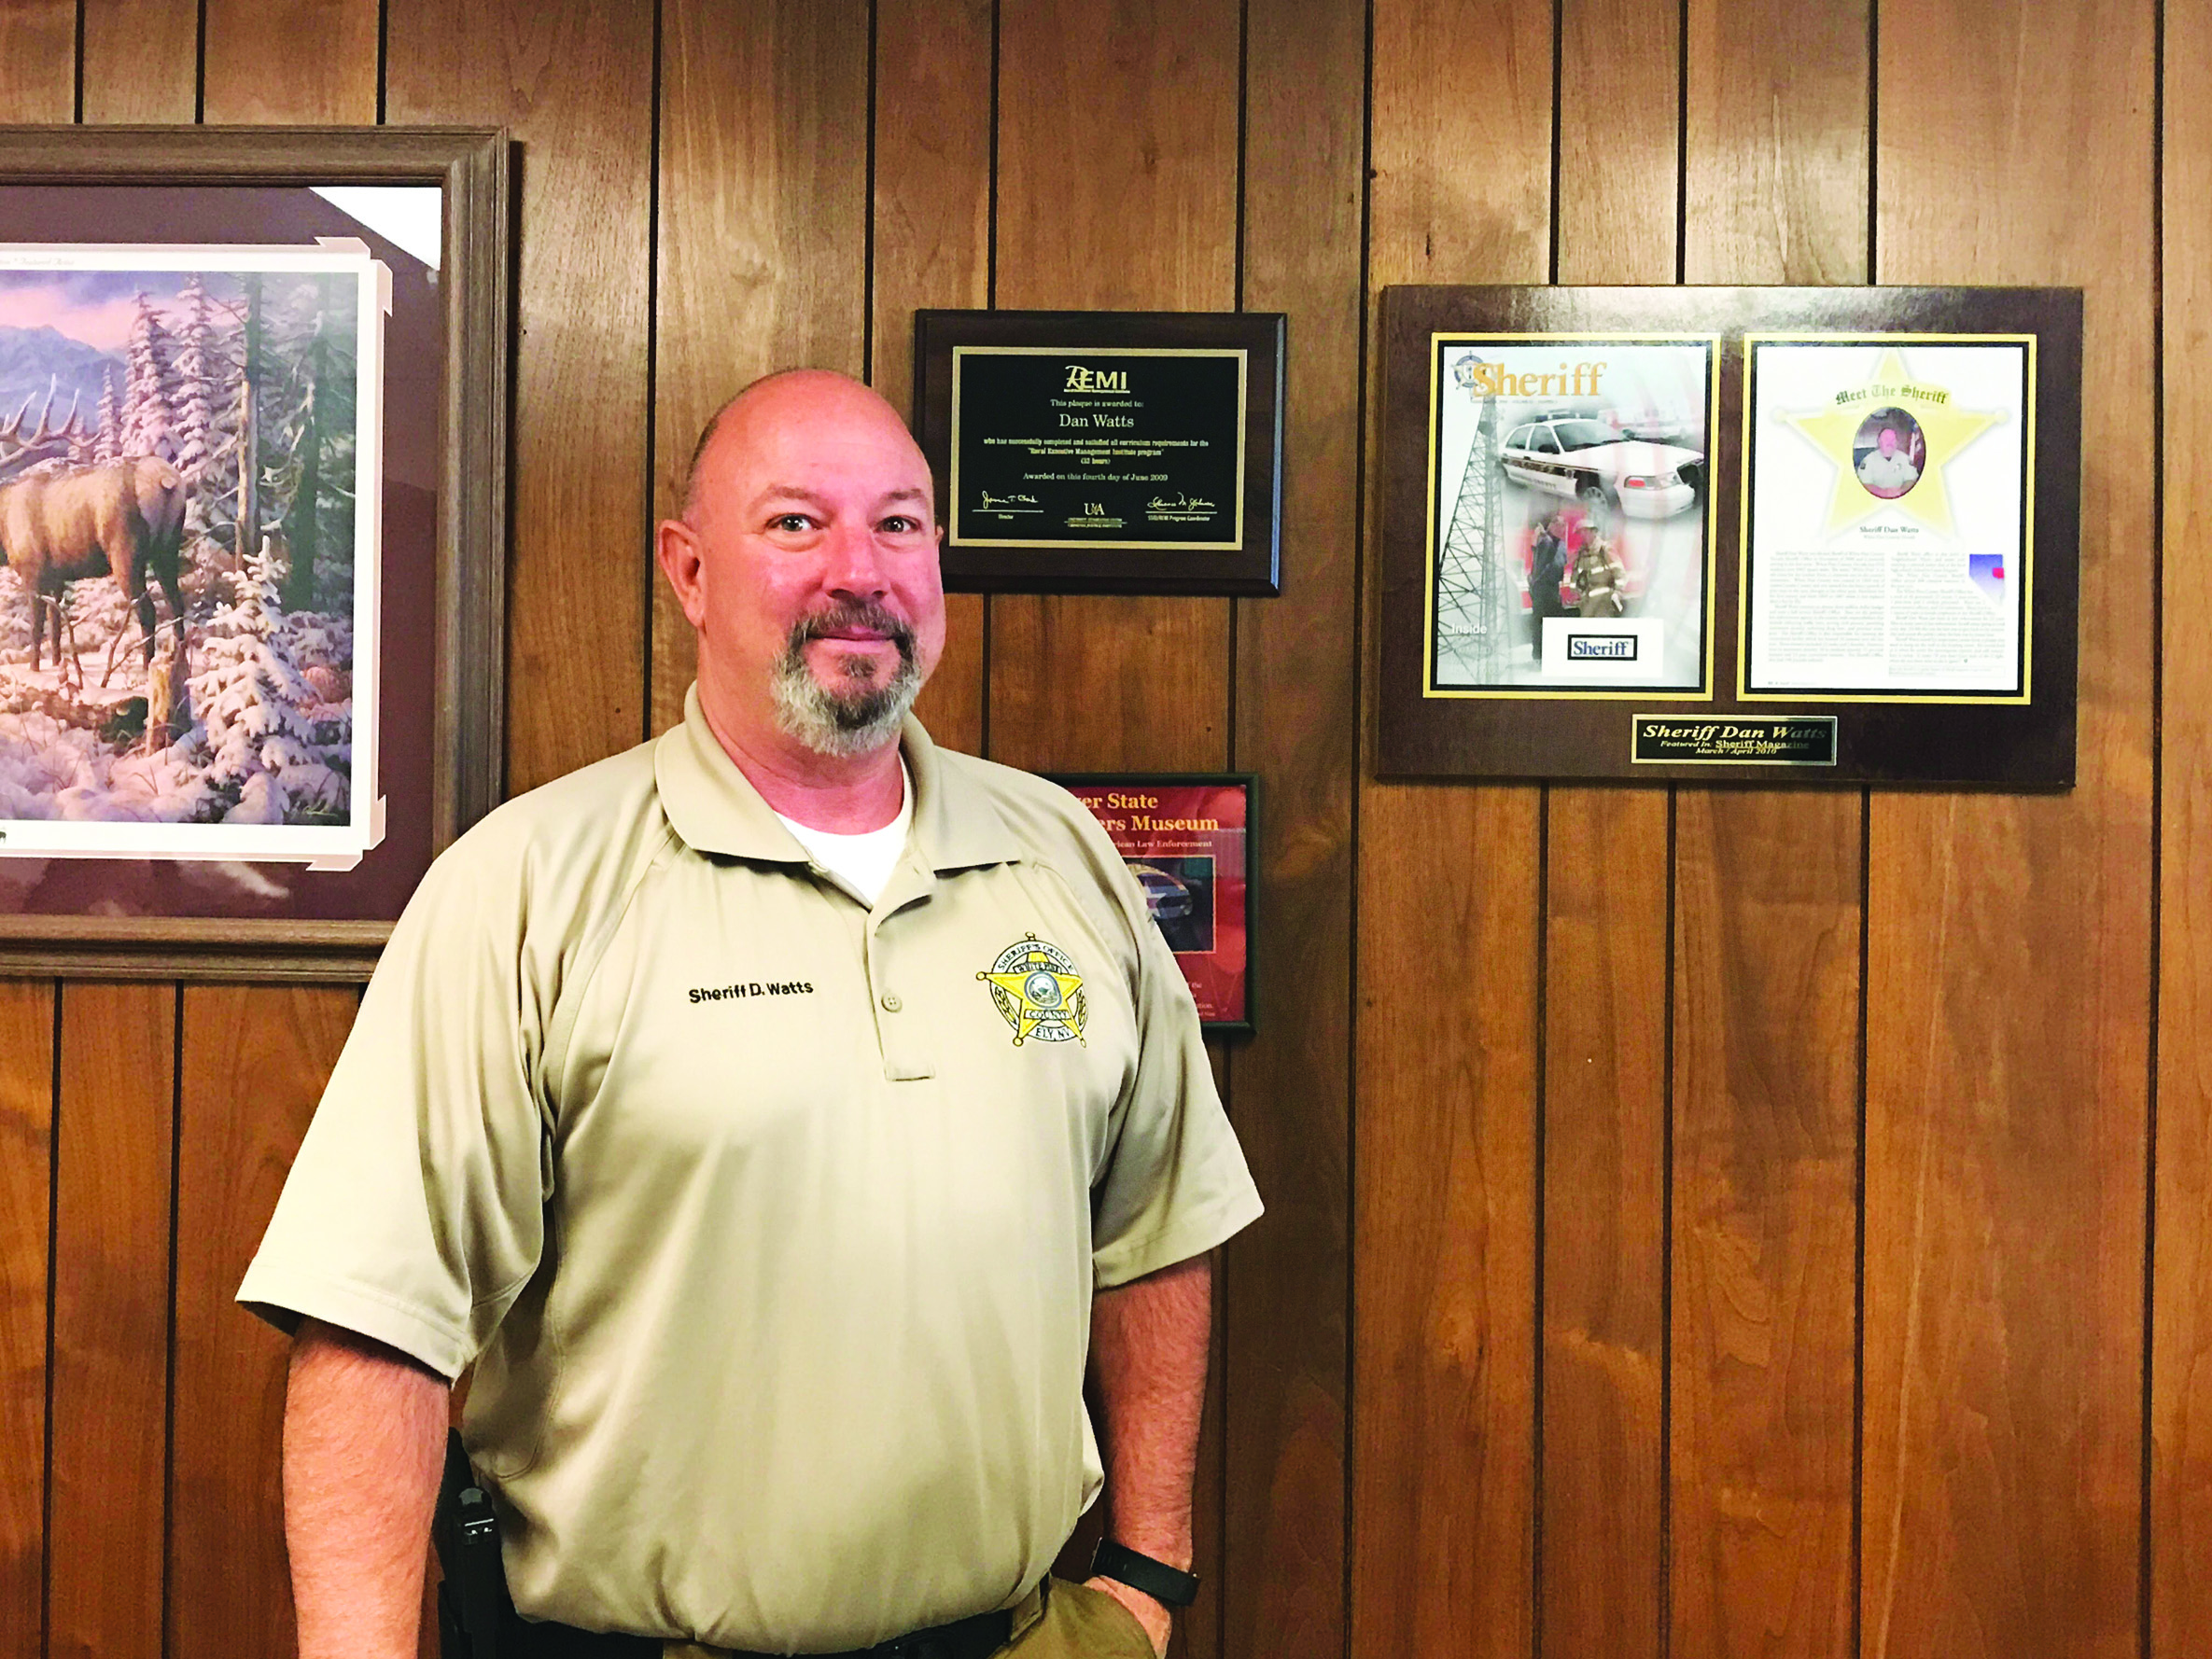 Sheriff resigns after 30 years on force